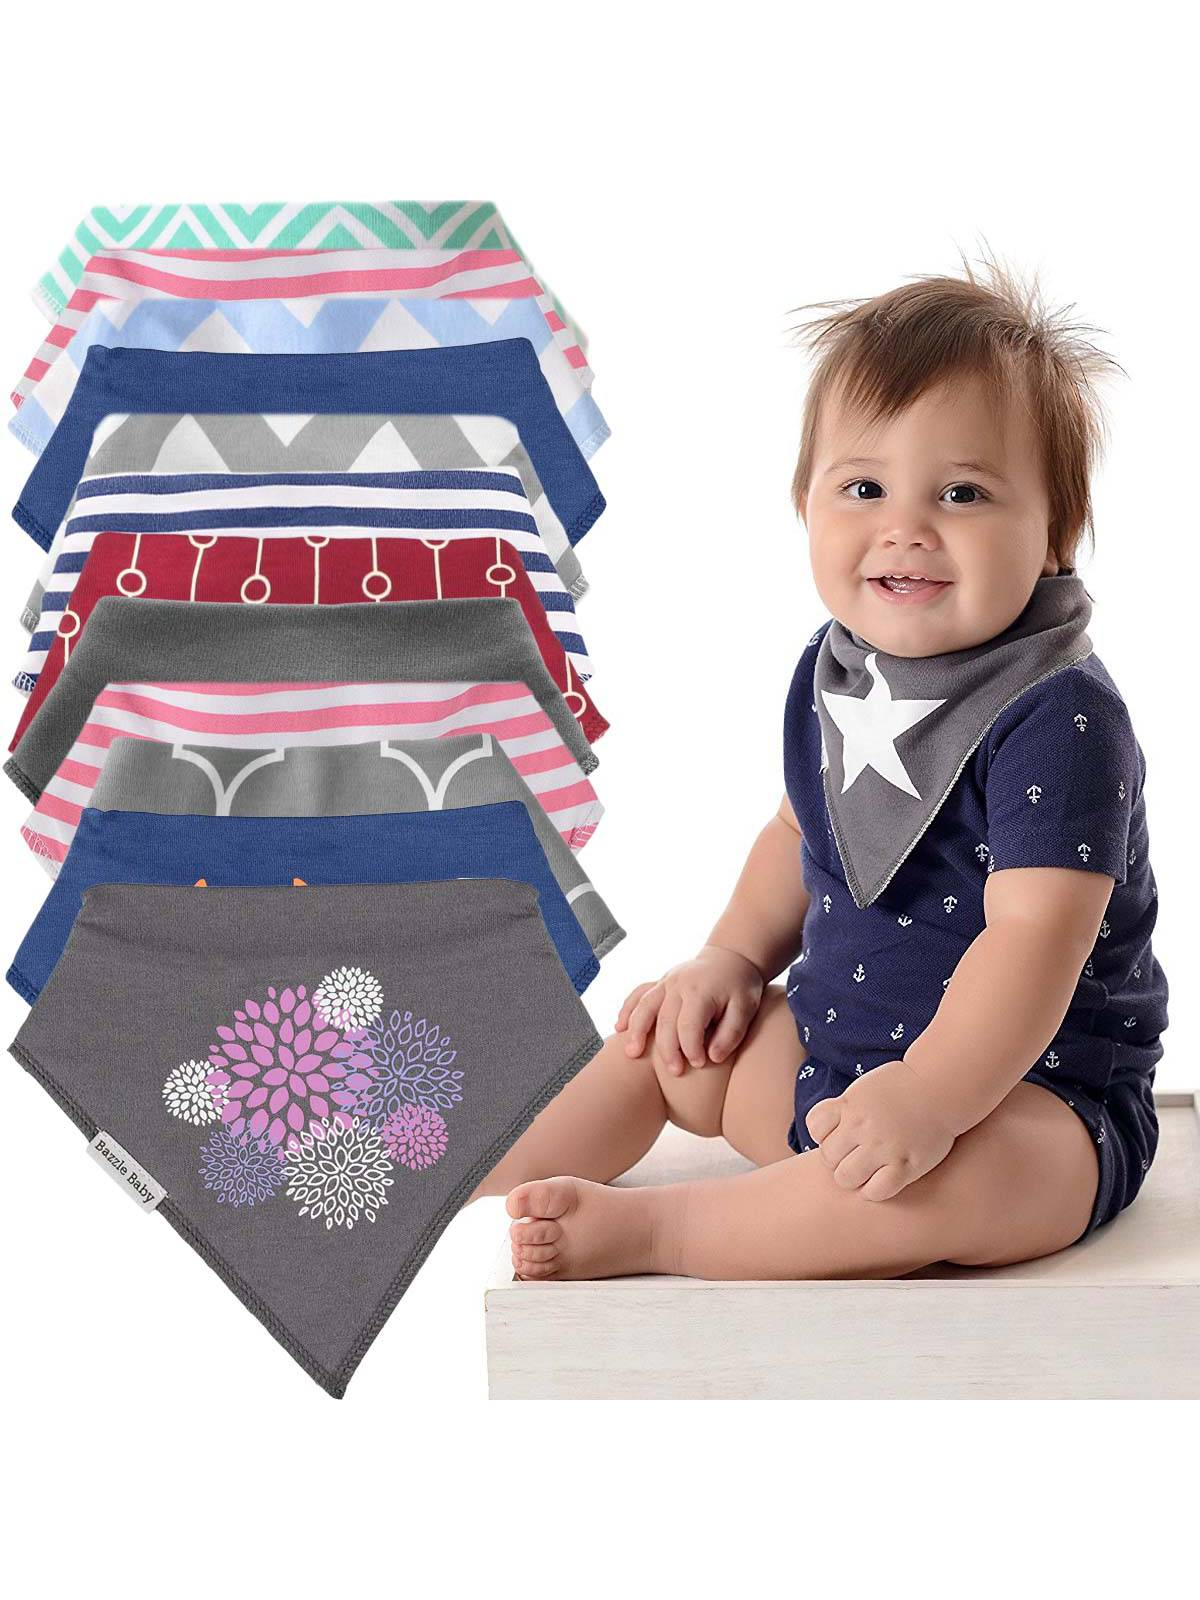 Bazzle Baby (12 Pack) Baby Bandana Drool Bibs Unisex Gift Set For Boys & Girls Infants Newborns by Bazzle Baby